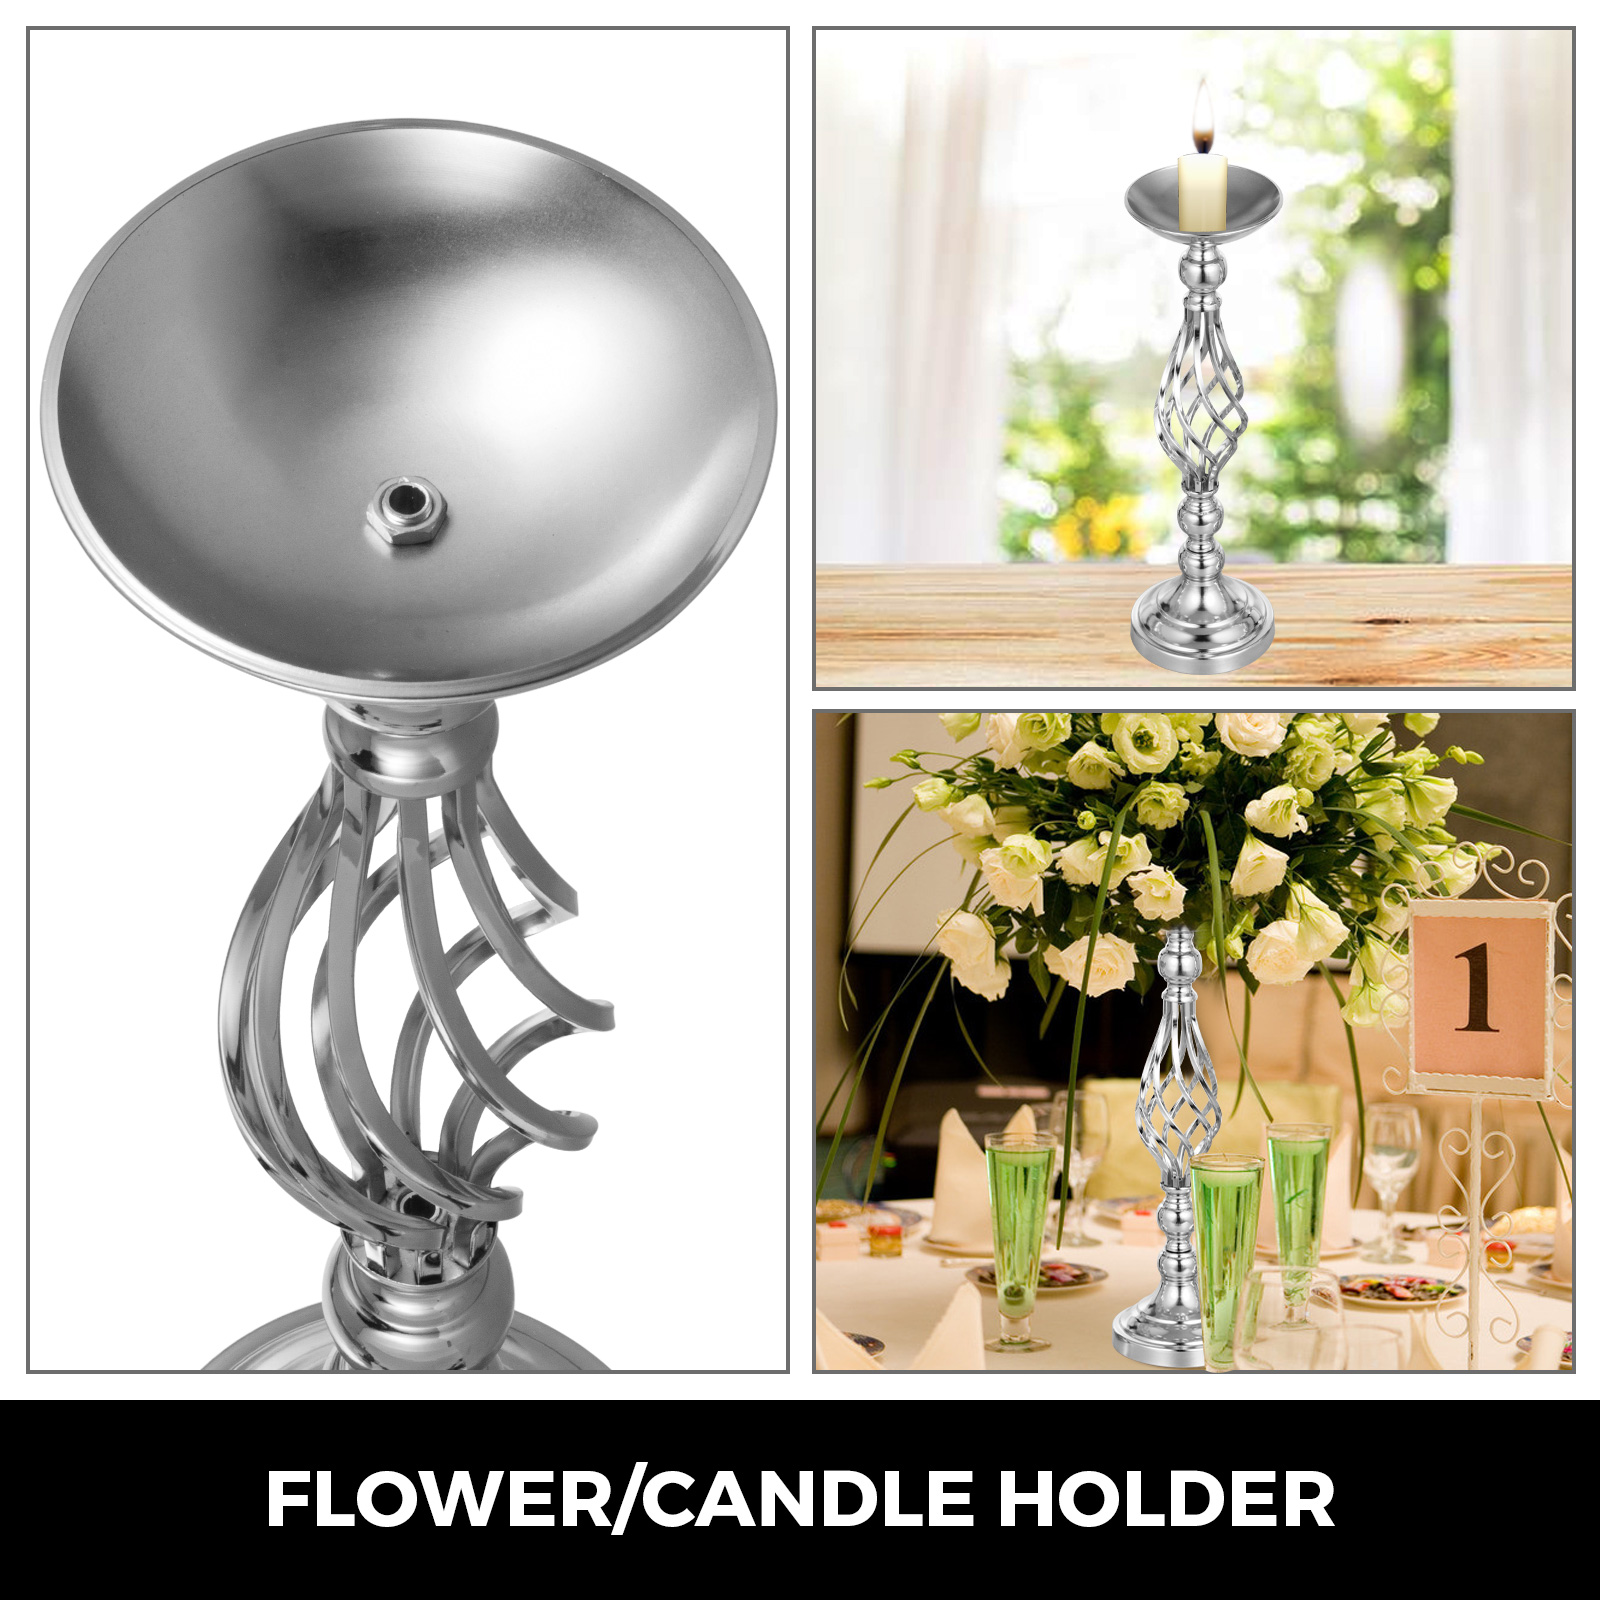 Flower-Rack-for-Wedding-Metal-Candle-Stand-4-11pcs-Centerpiece-Flower-Vase thumbnail 27